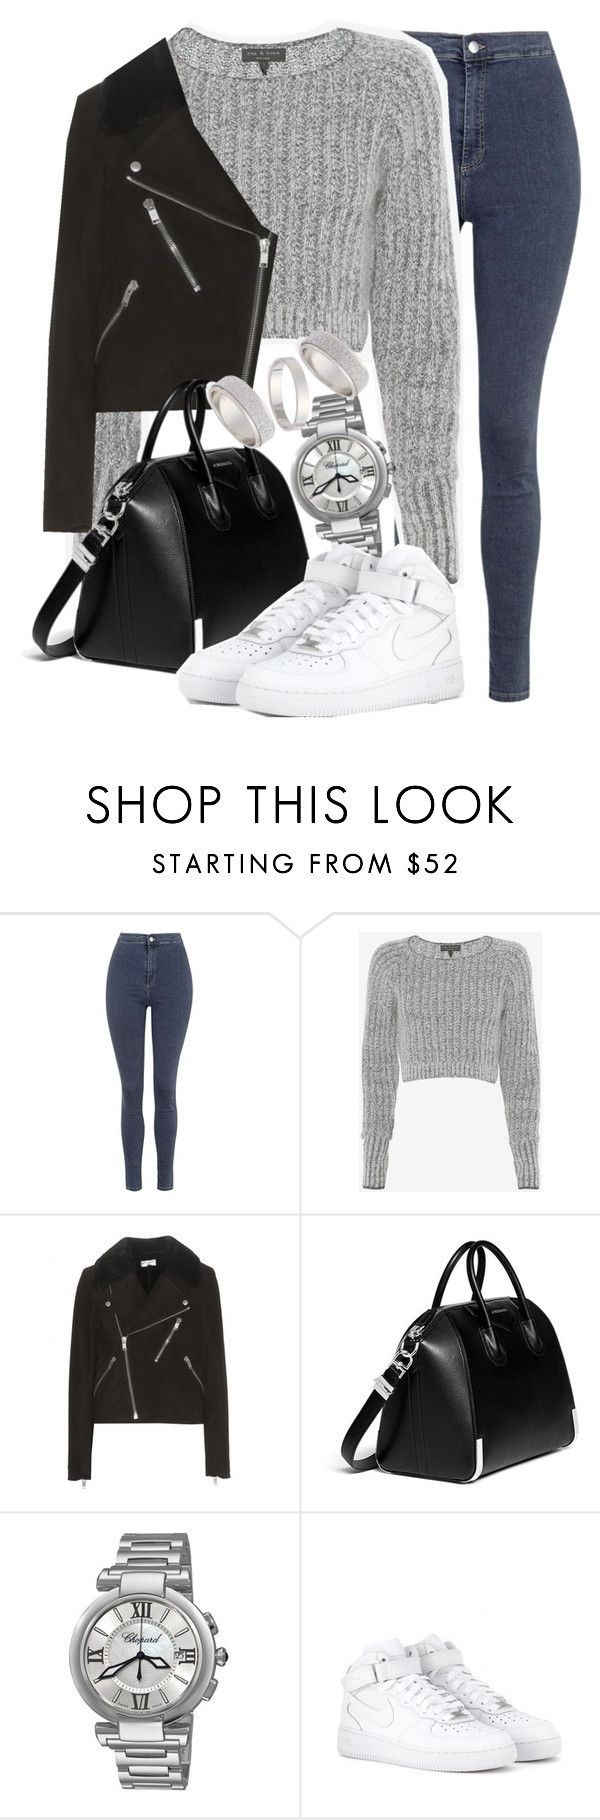 """Untitled #2174"" by do-the-calder ❤ liked on Polyvore featuring Topshop, rag & bone, Yves Saint Laurent, Givenchy, Chopard, NIKE, women's clothing, women, female and woman"